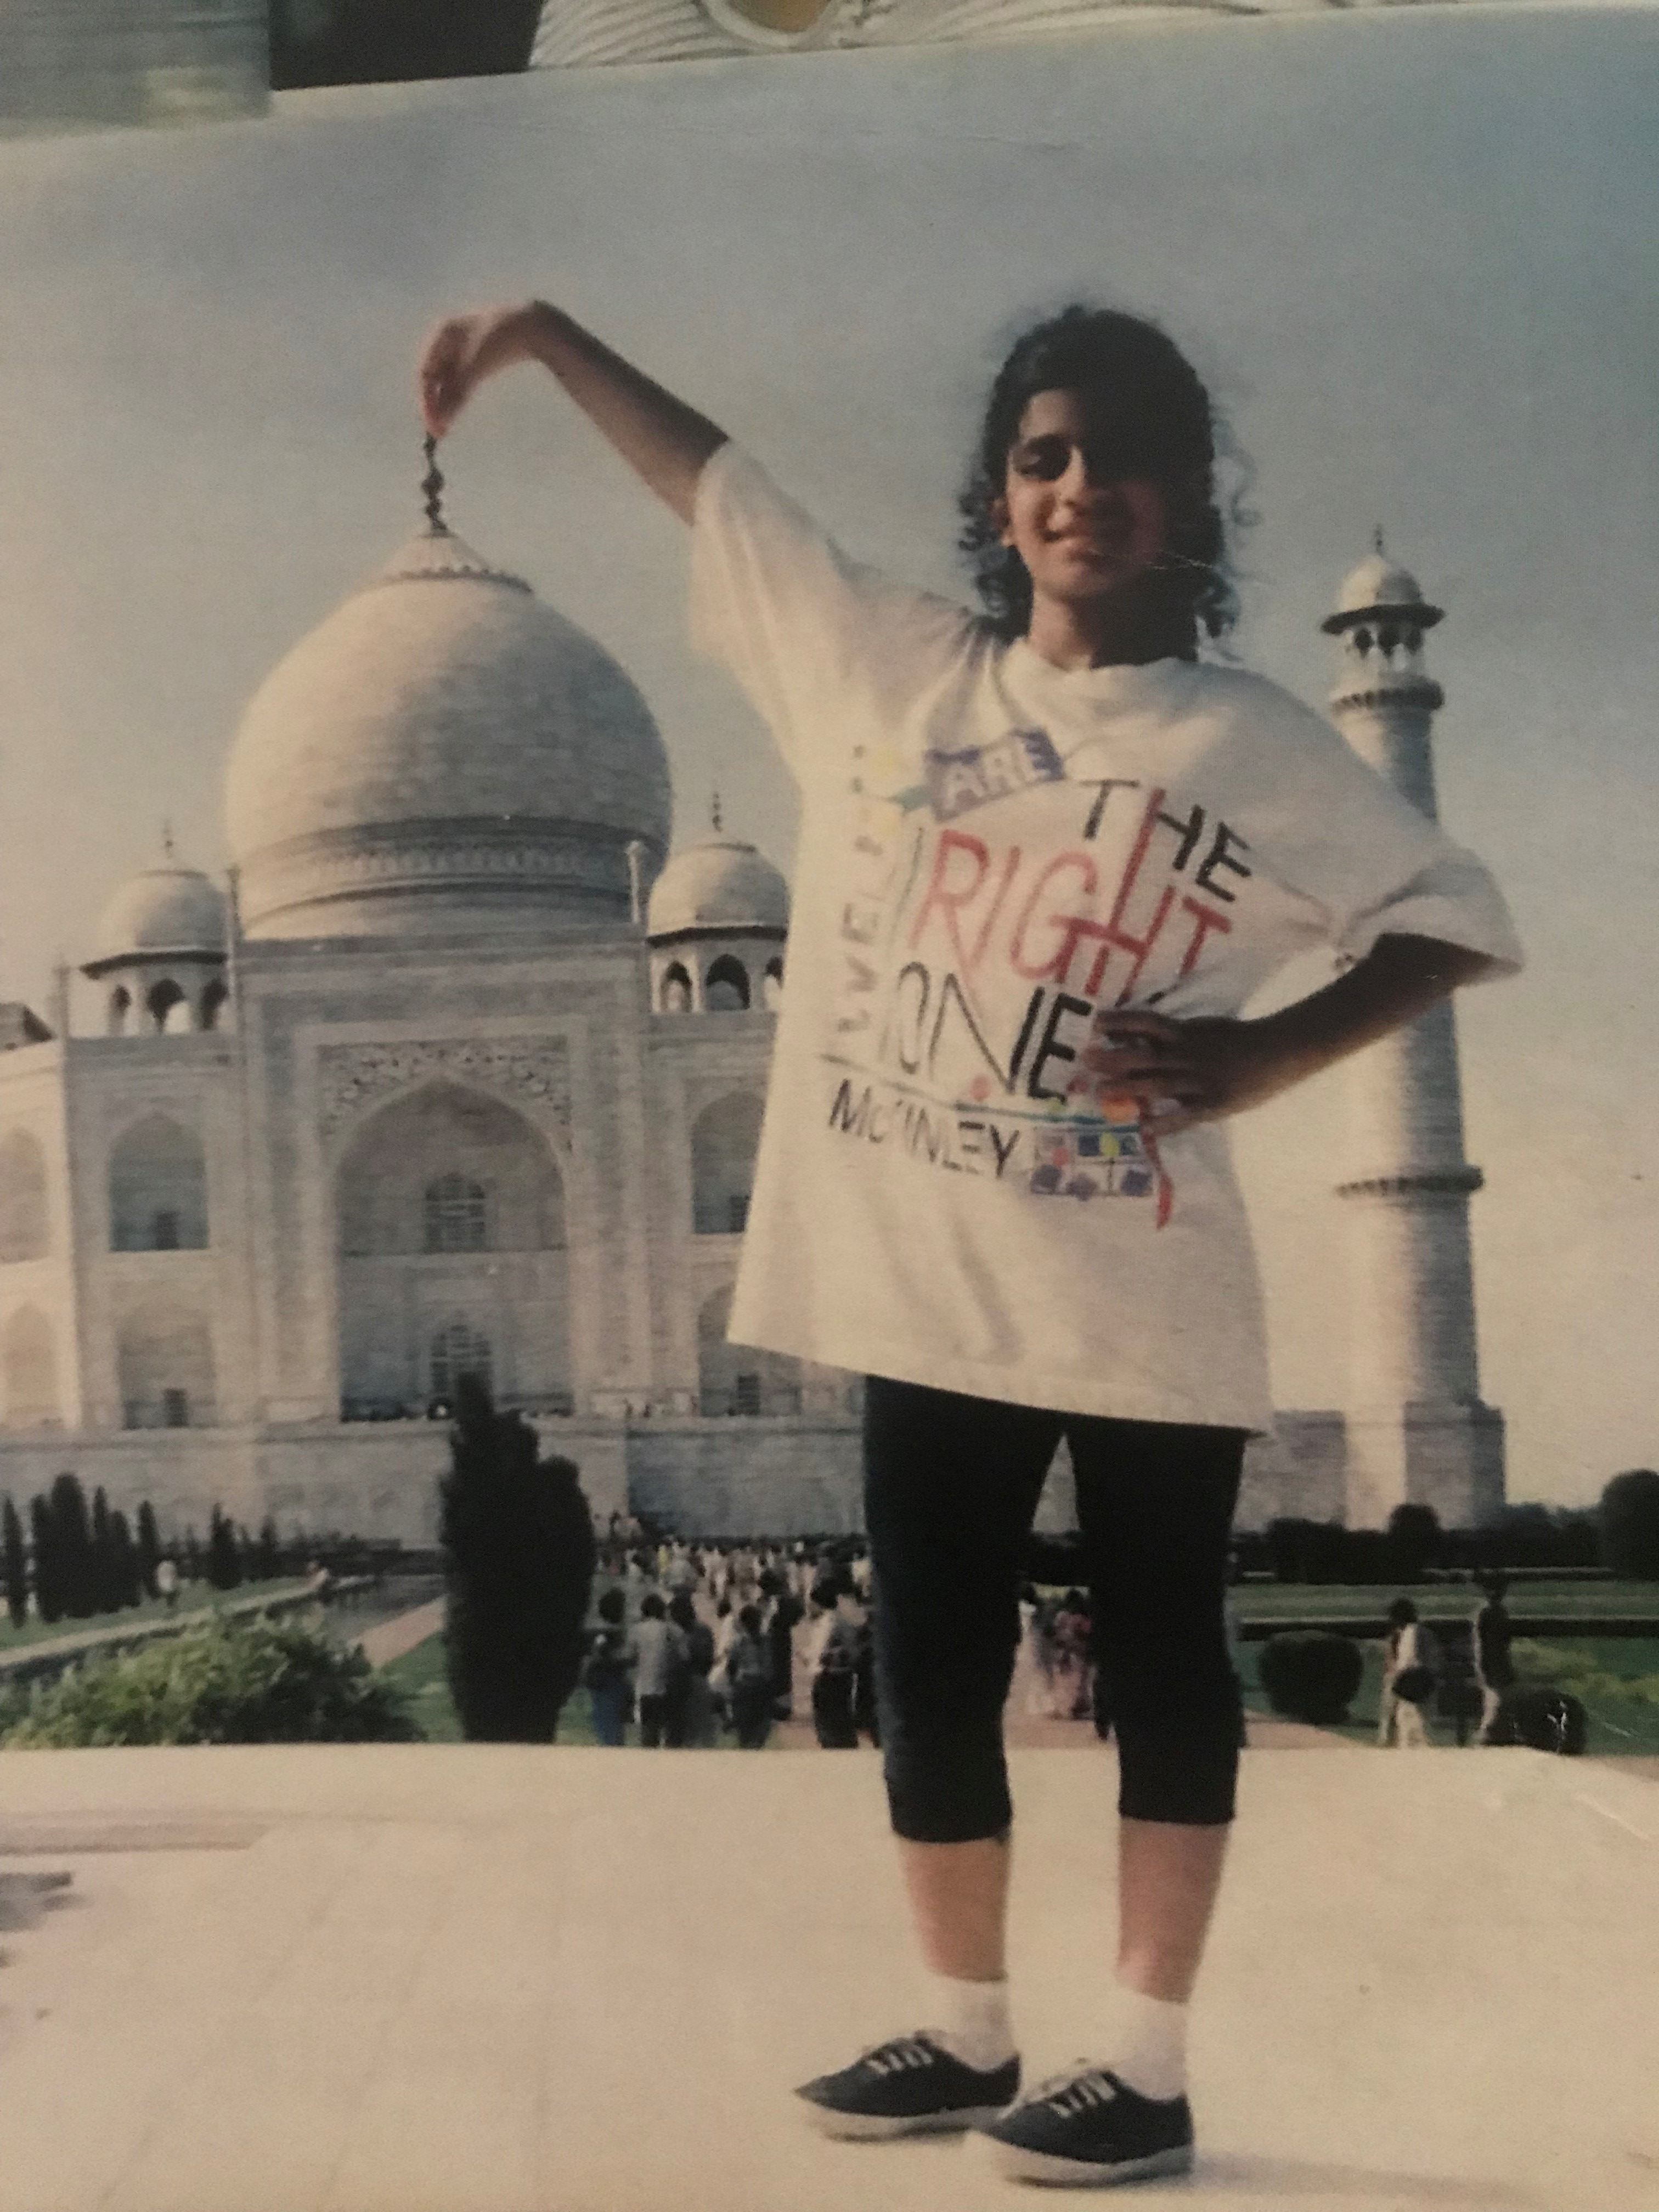 <div class='meta'><div class='origin-logo' data-origin='none'></div><span class='caption-text' data-credit=''>THROWBACK IN INDIA: This isn't Pooja Lodhia's first trip to Agra to see the Taj Mahal. Here's an adorable photo of Pooja visiting the shrine.</span></div>